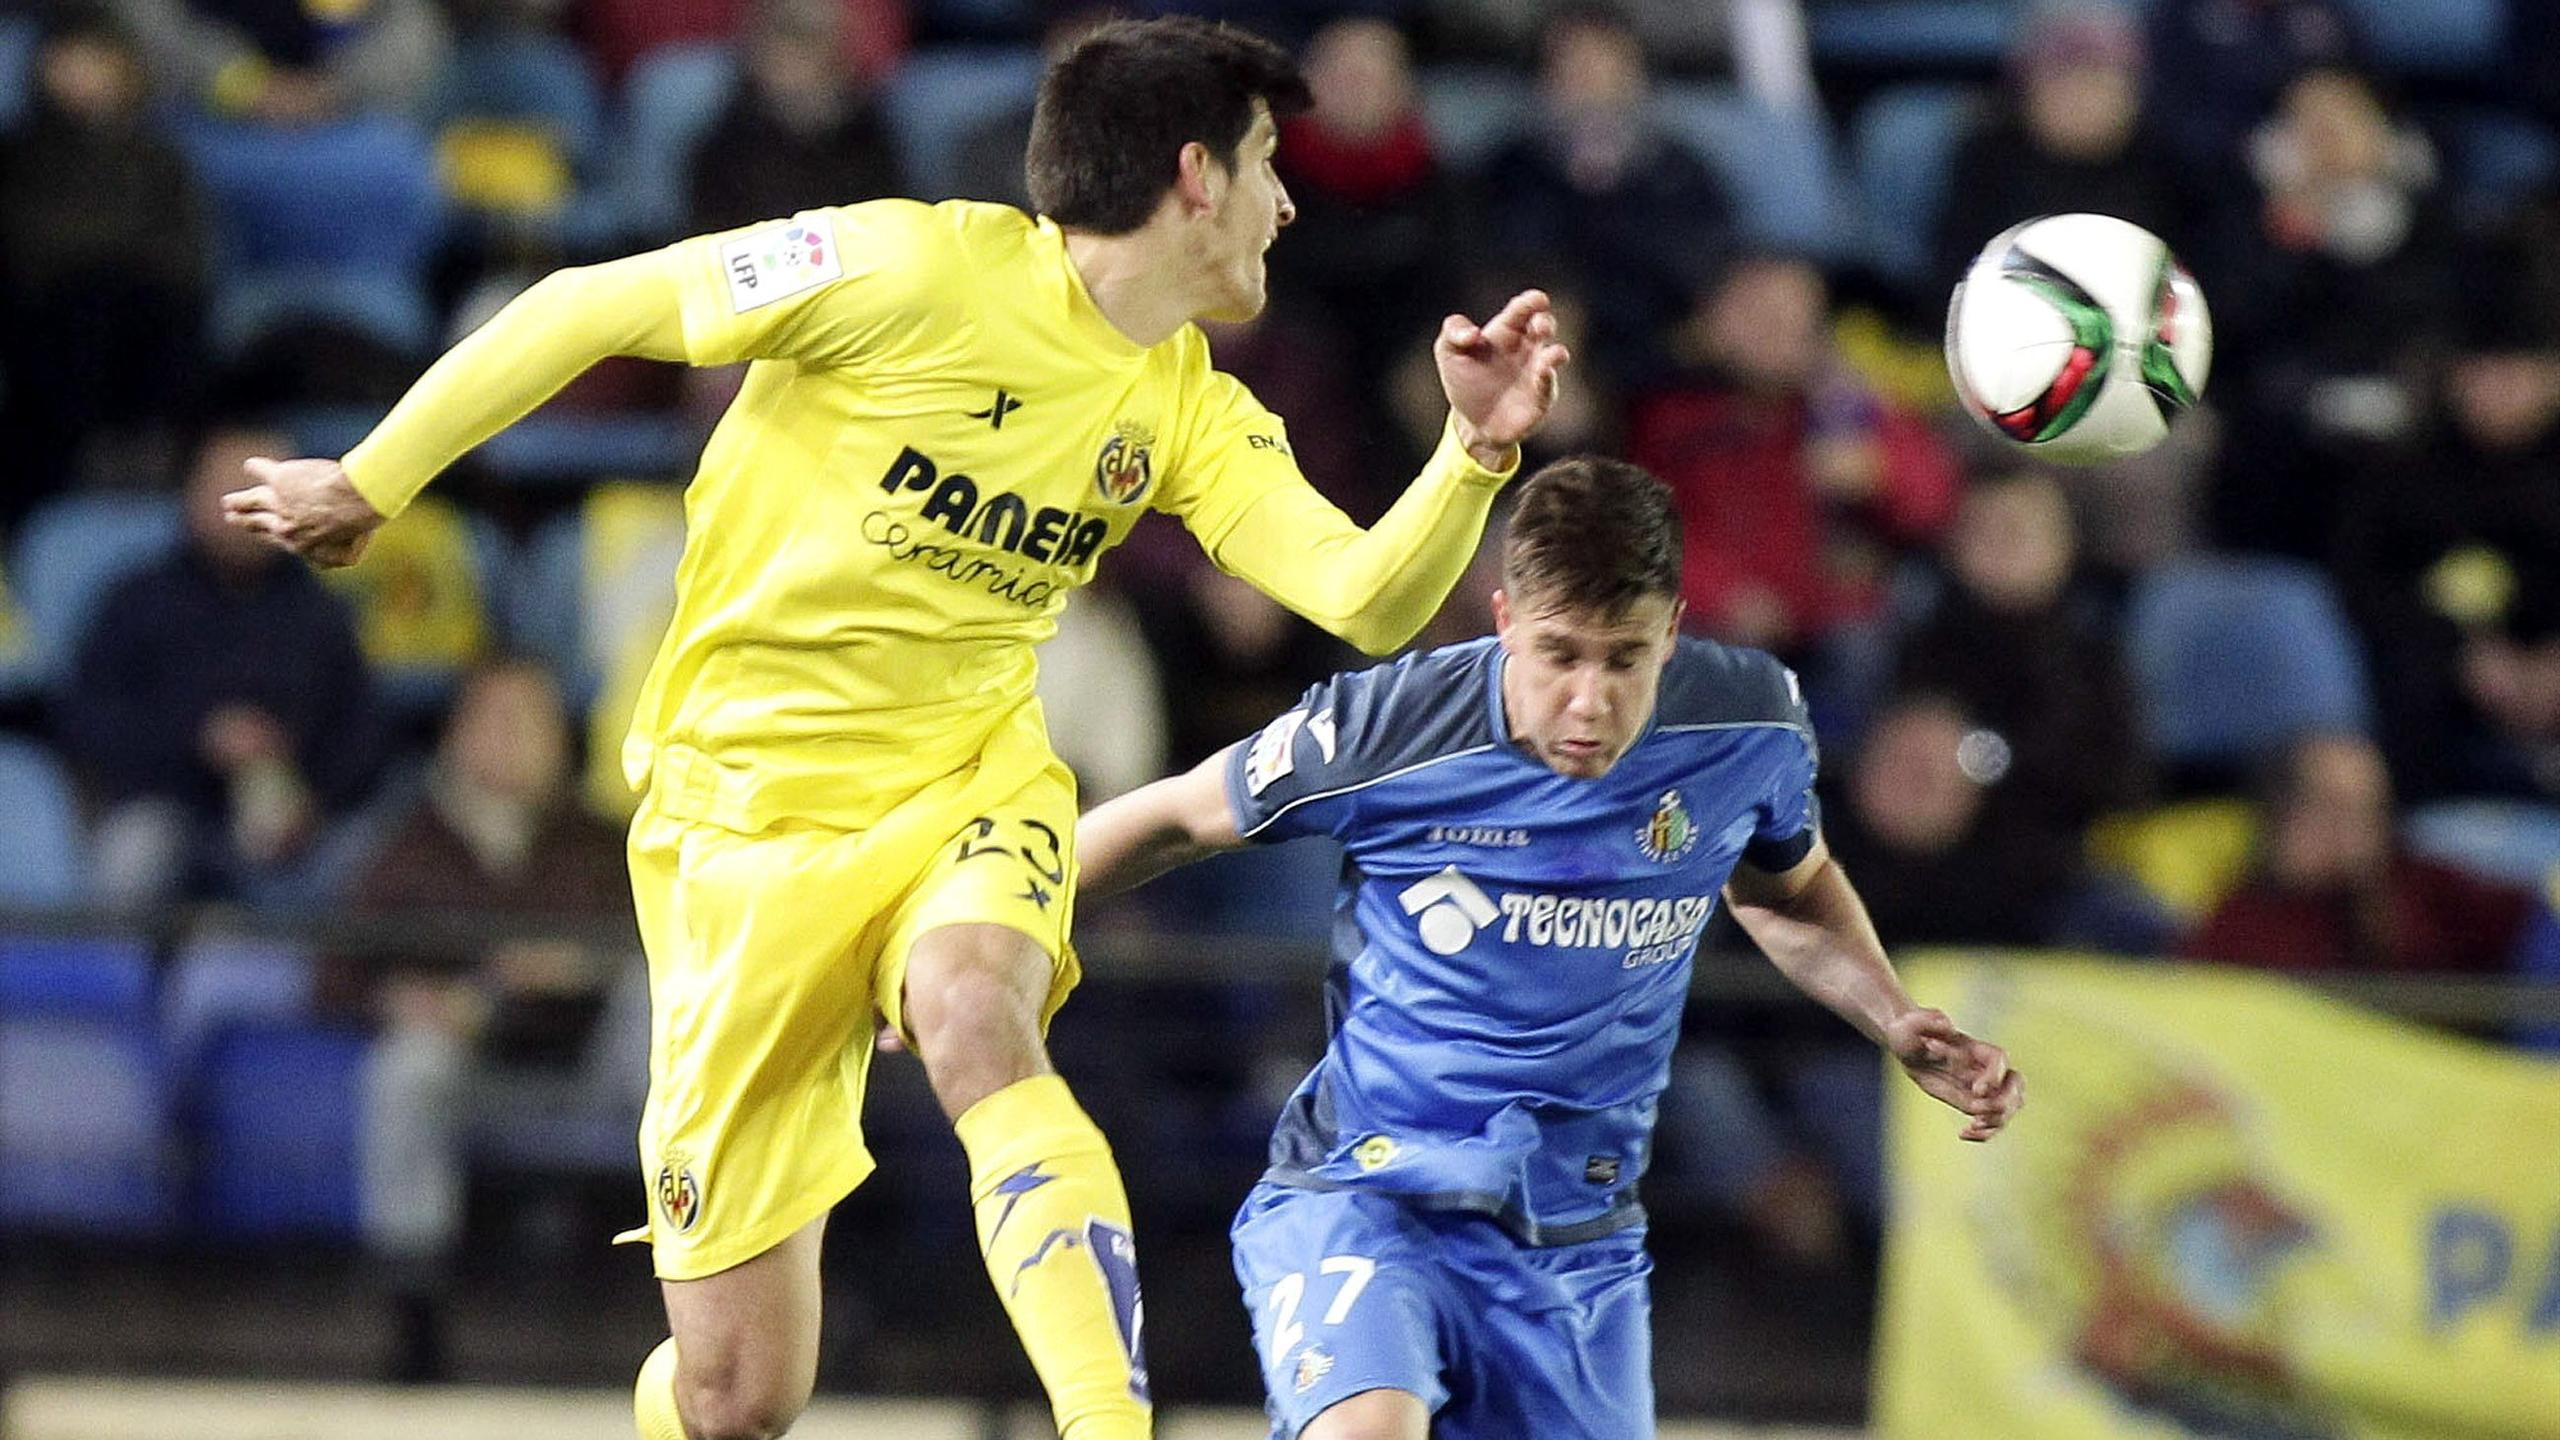 Video: Getafe vs Villarreal